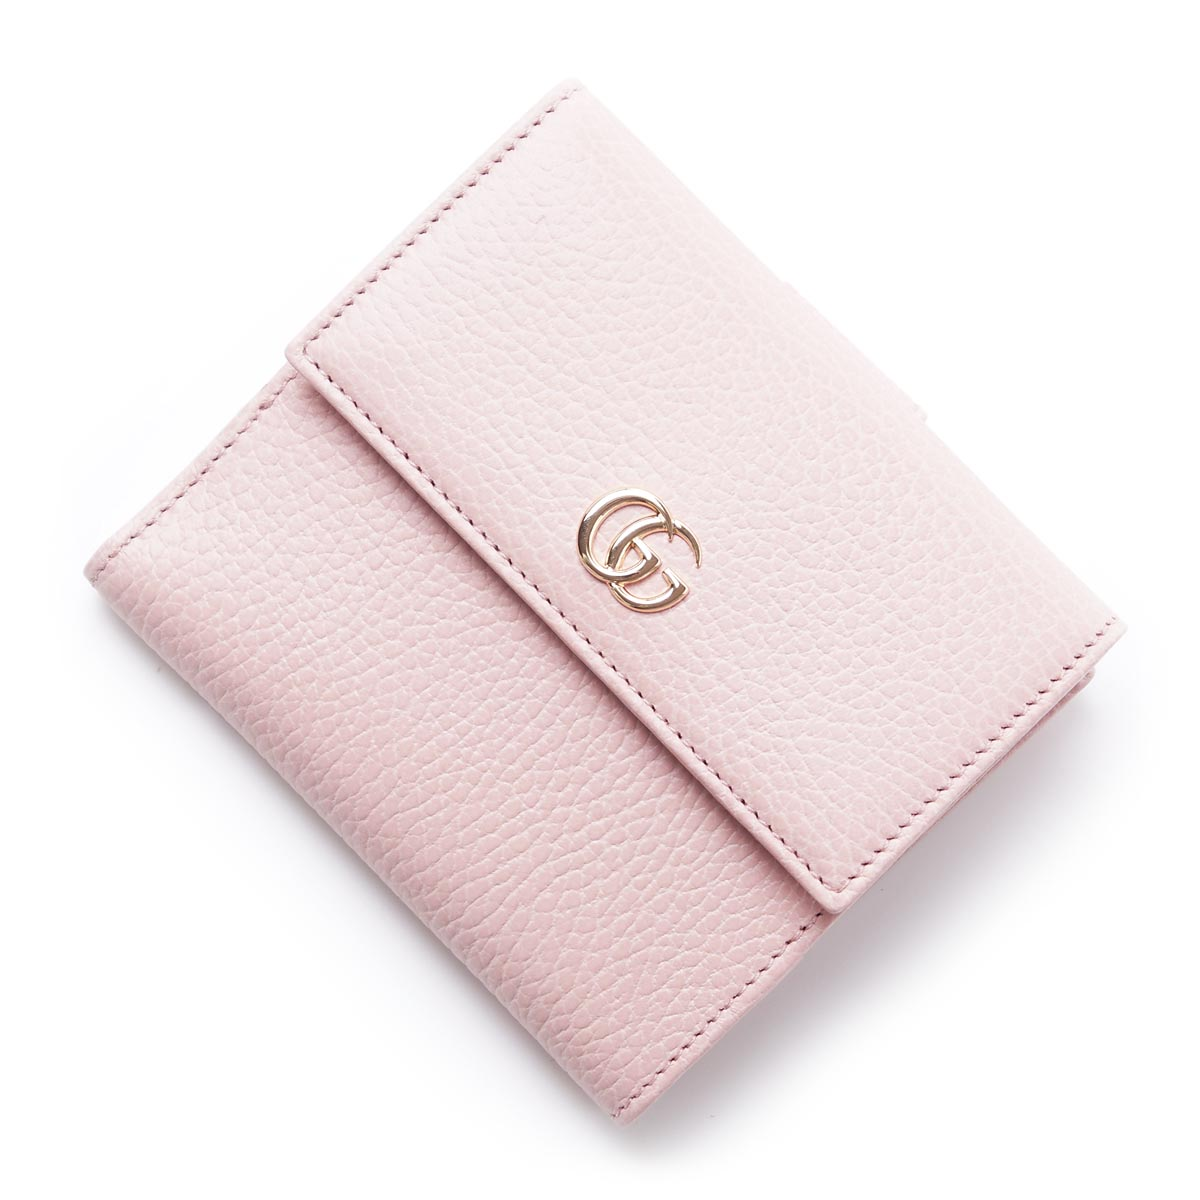 23d730fdde8 Gucci  GUCCI two fold wallet  with the coin purse